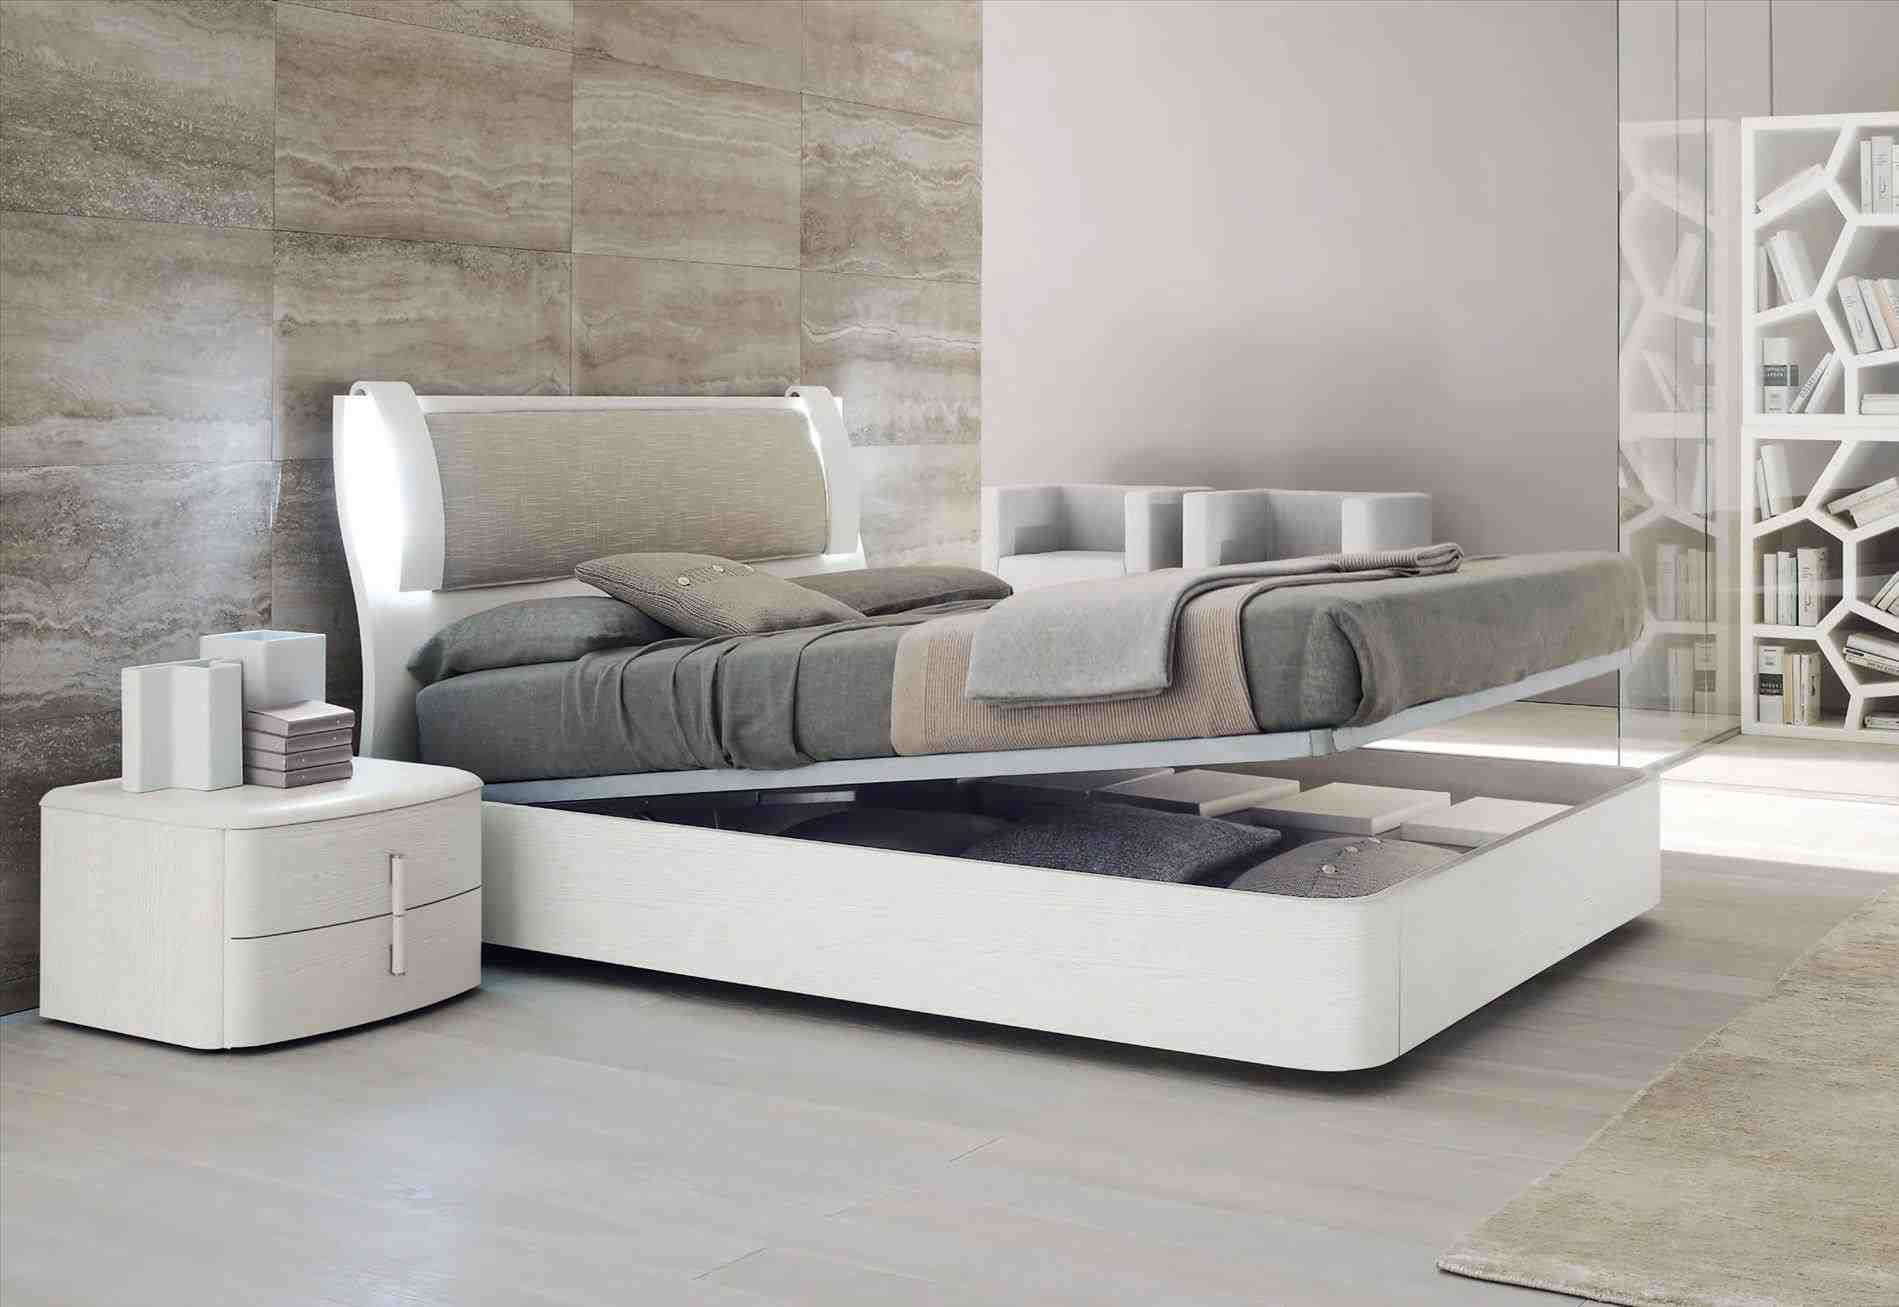 Cheap modern furniture sets living room trendy image of fresh in